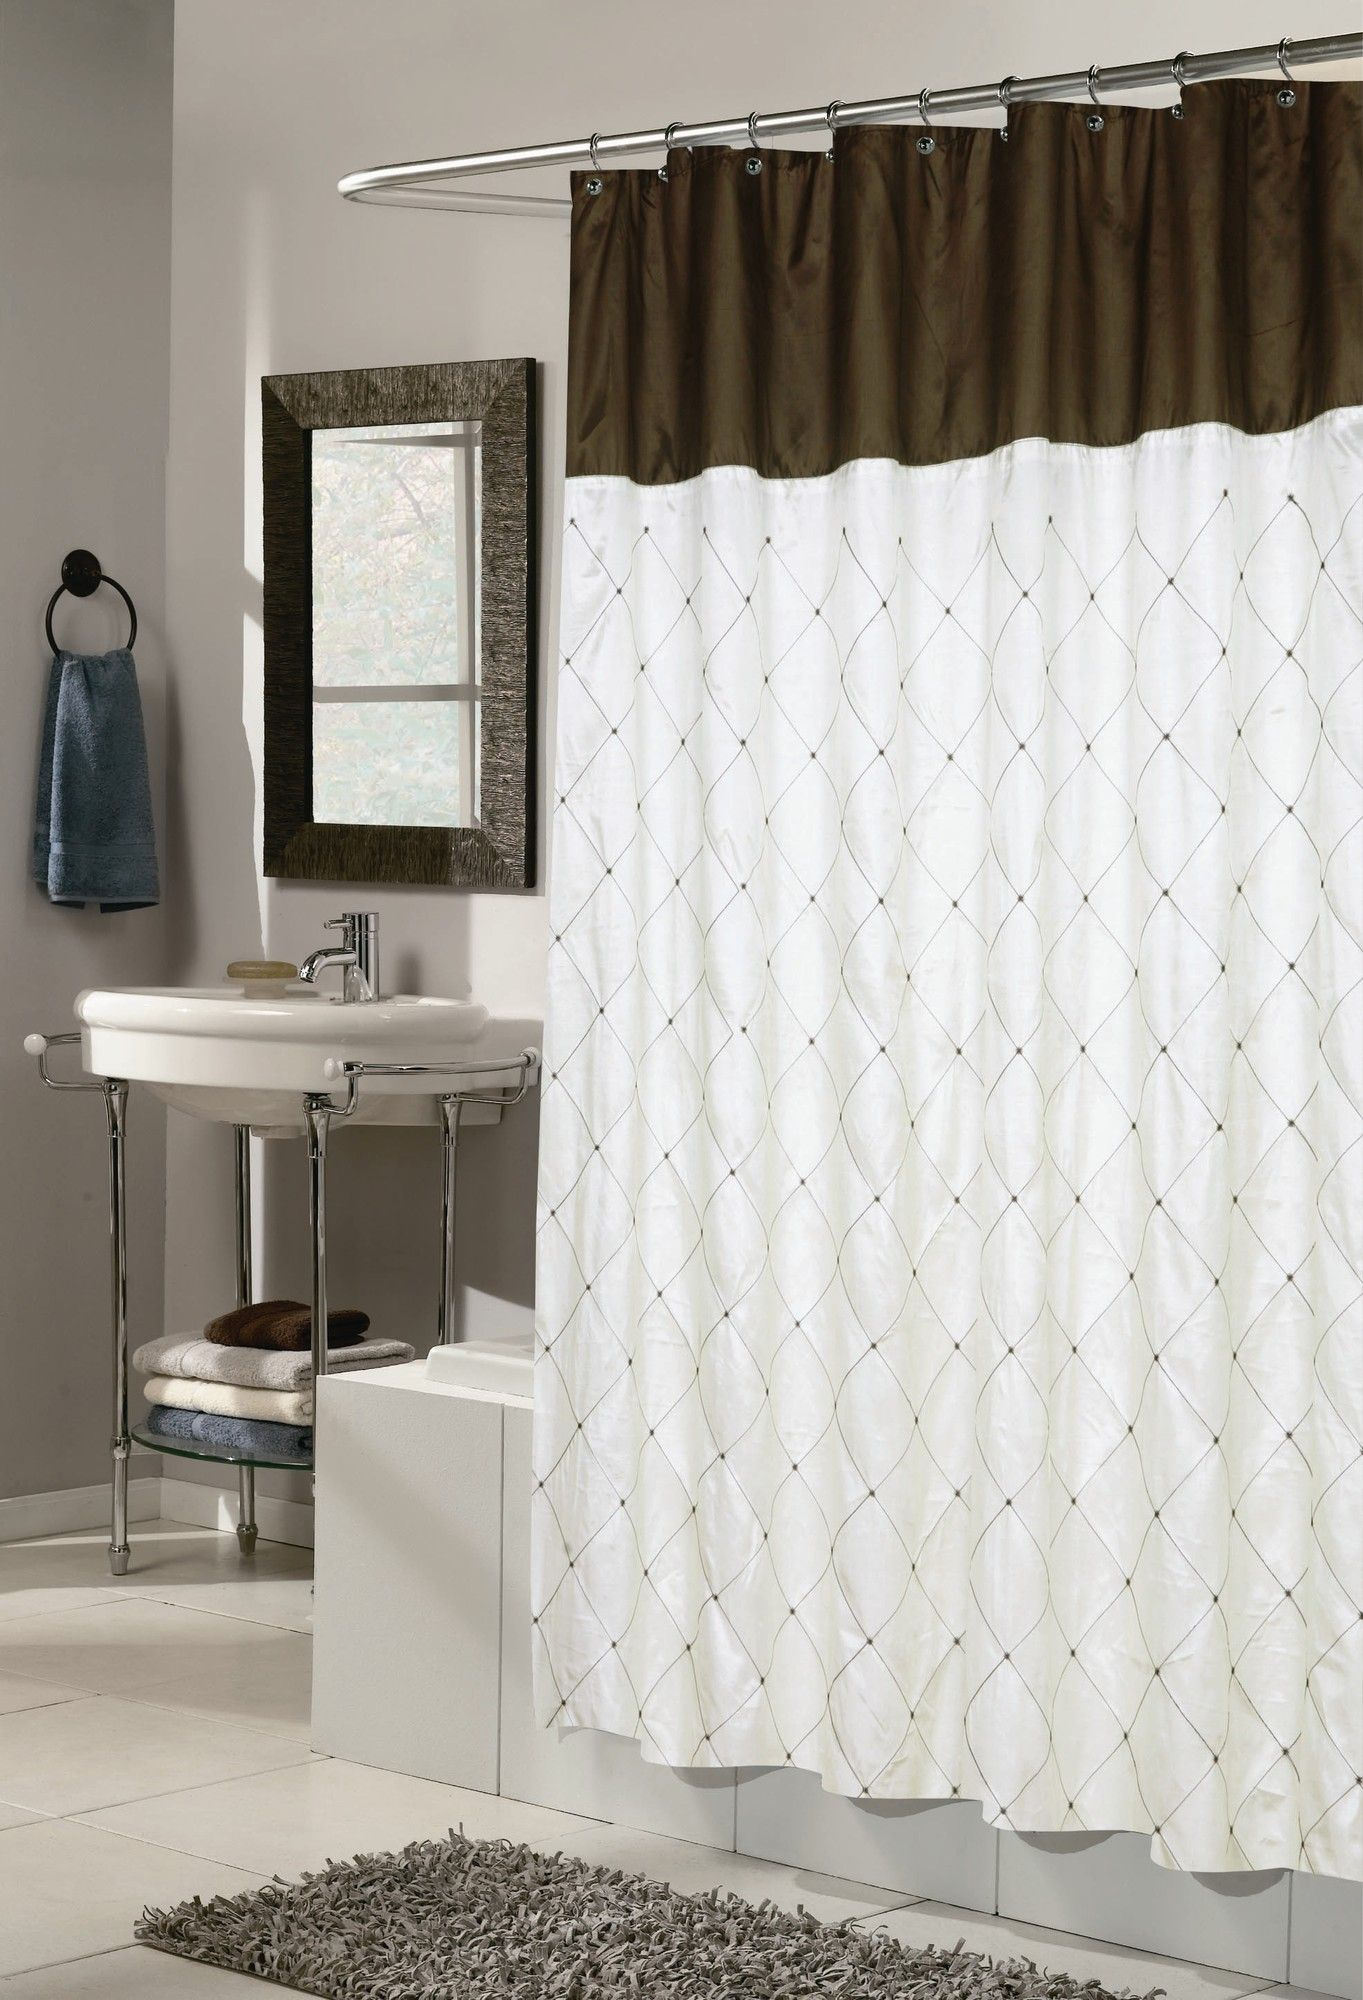 Carnation Home Fashions Diamond Patterned Embroided Polyester Shower Curtain